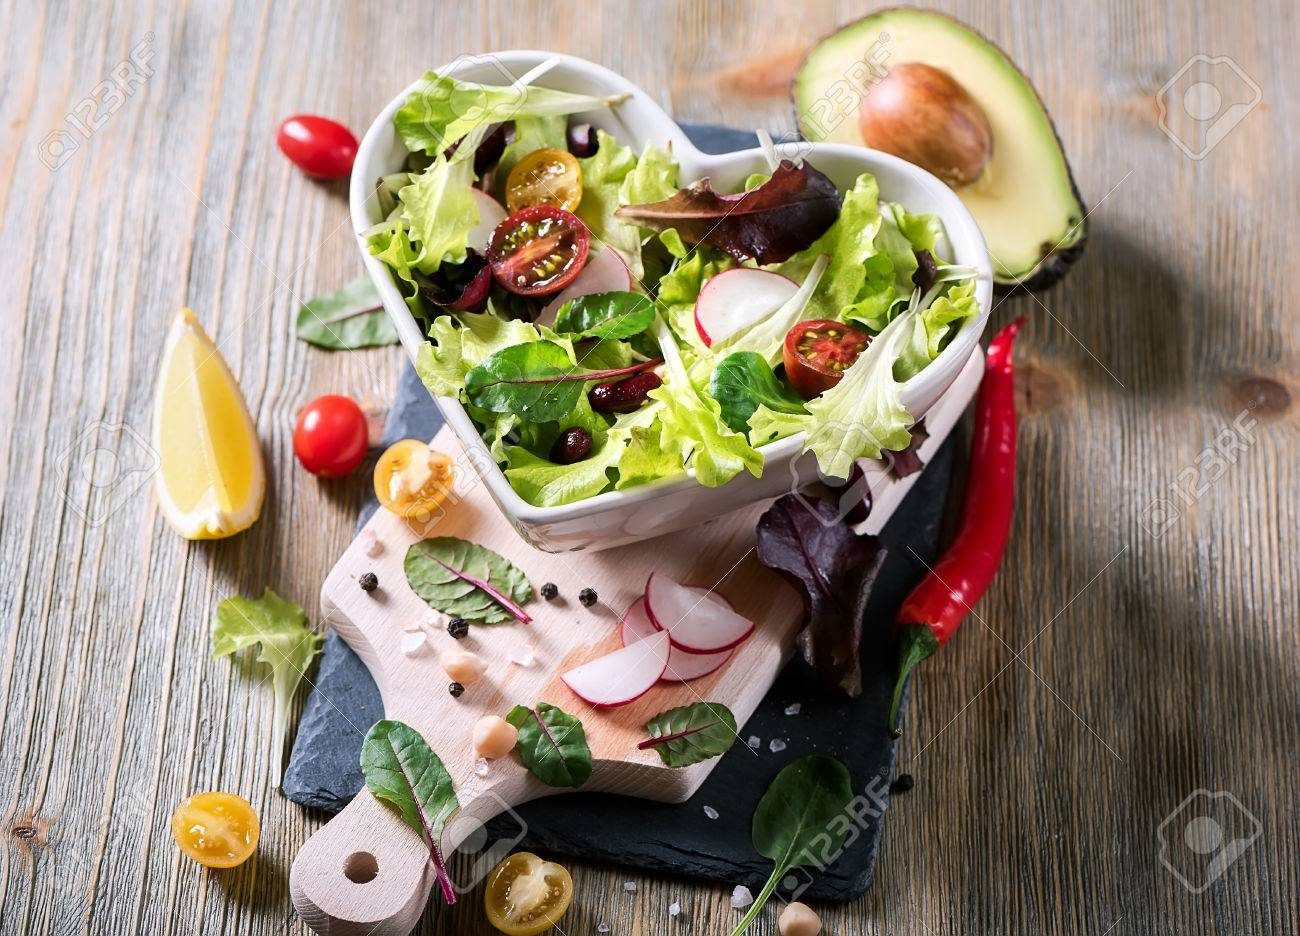 Healthy green salad with avocado, mangold leaves, red beans and cherry tomatoes. Vegan snack, vitamins, vegetarian food and diet concept - 74119582